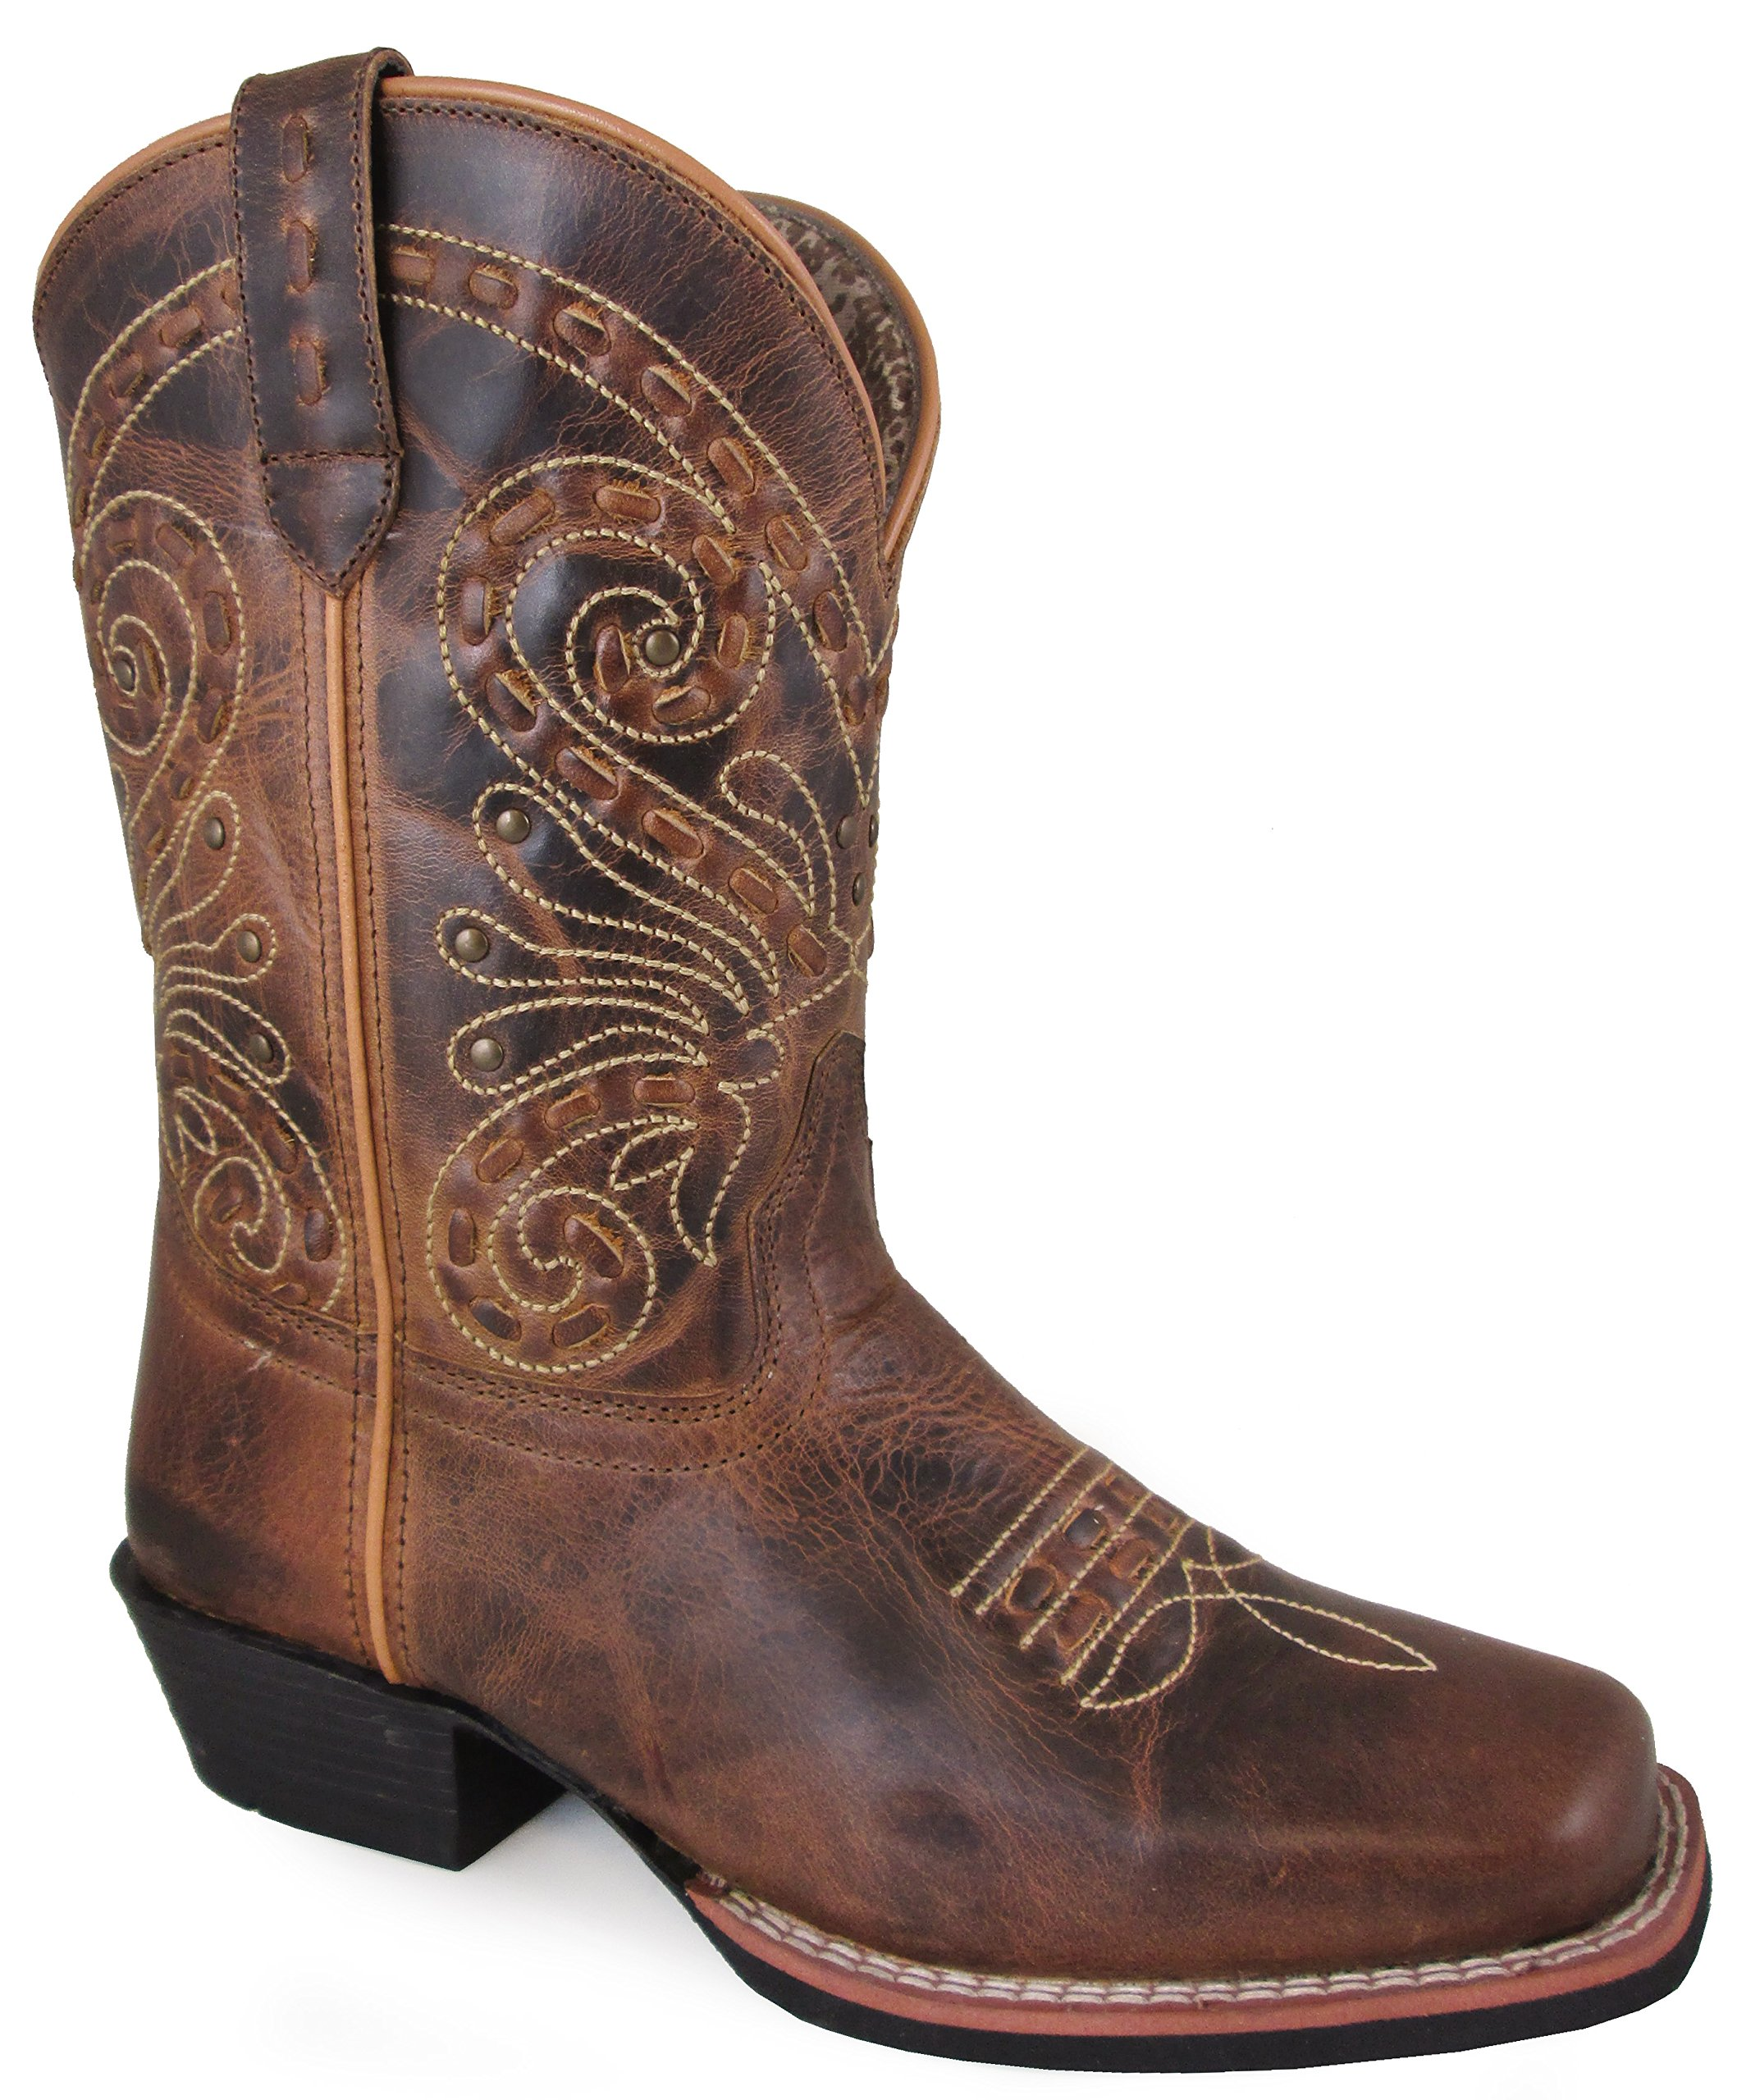 Smoky Mountain Women's Shelby Pull On Straps Stitched Design Square Toe Brown Waxed Distress Boots 9.5M